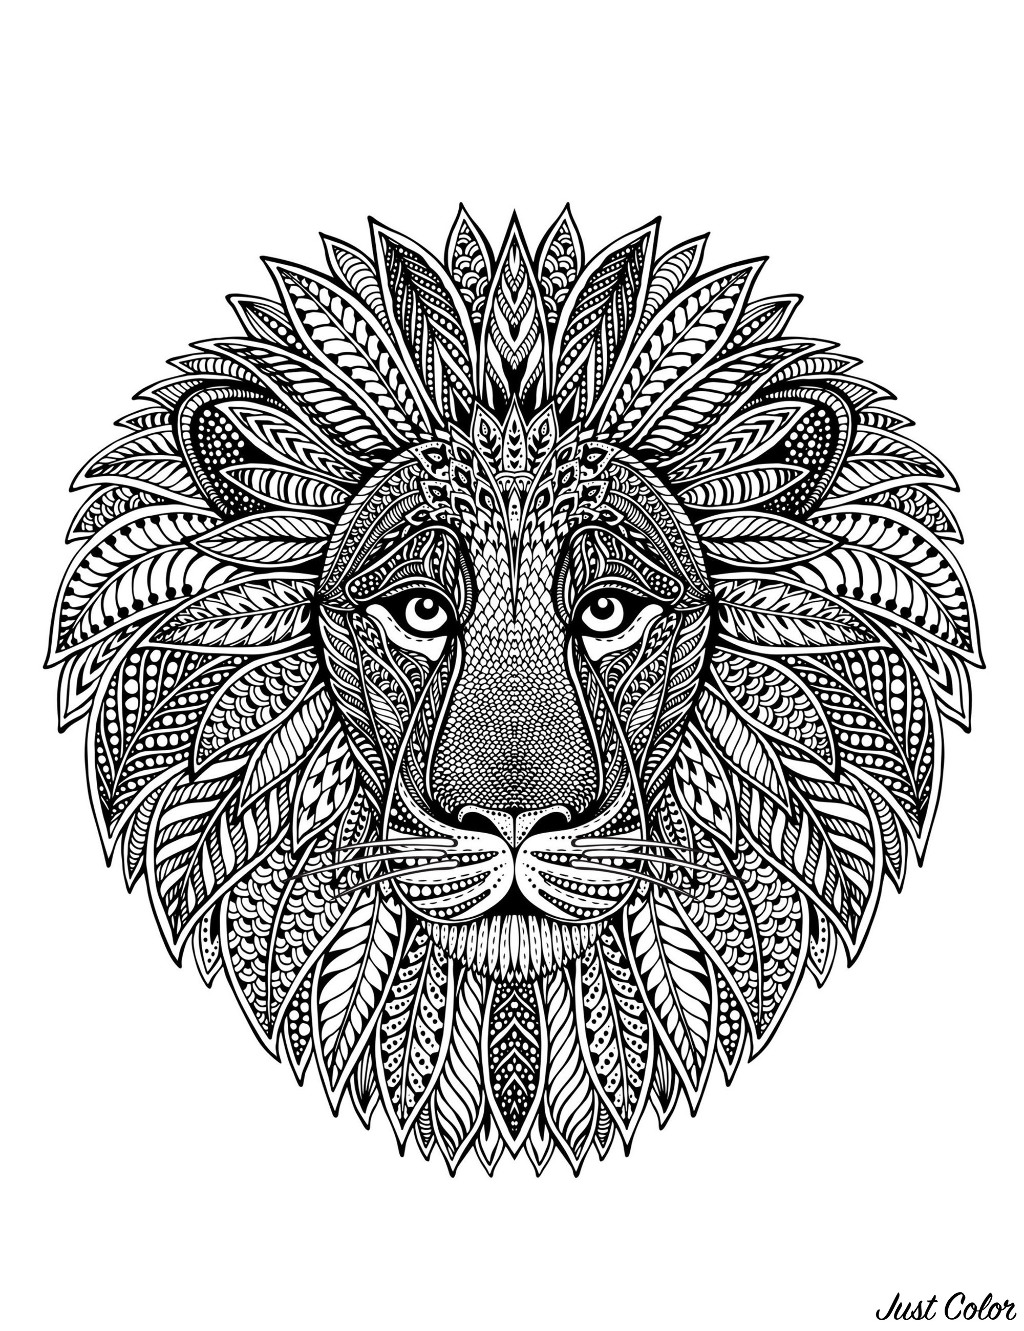 This very detailed lion head design is just waiting to be colored in this pretty original Mandala, it's up to you to print it and let your artistic sense guide you.